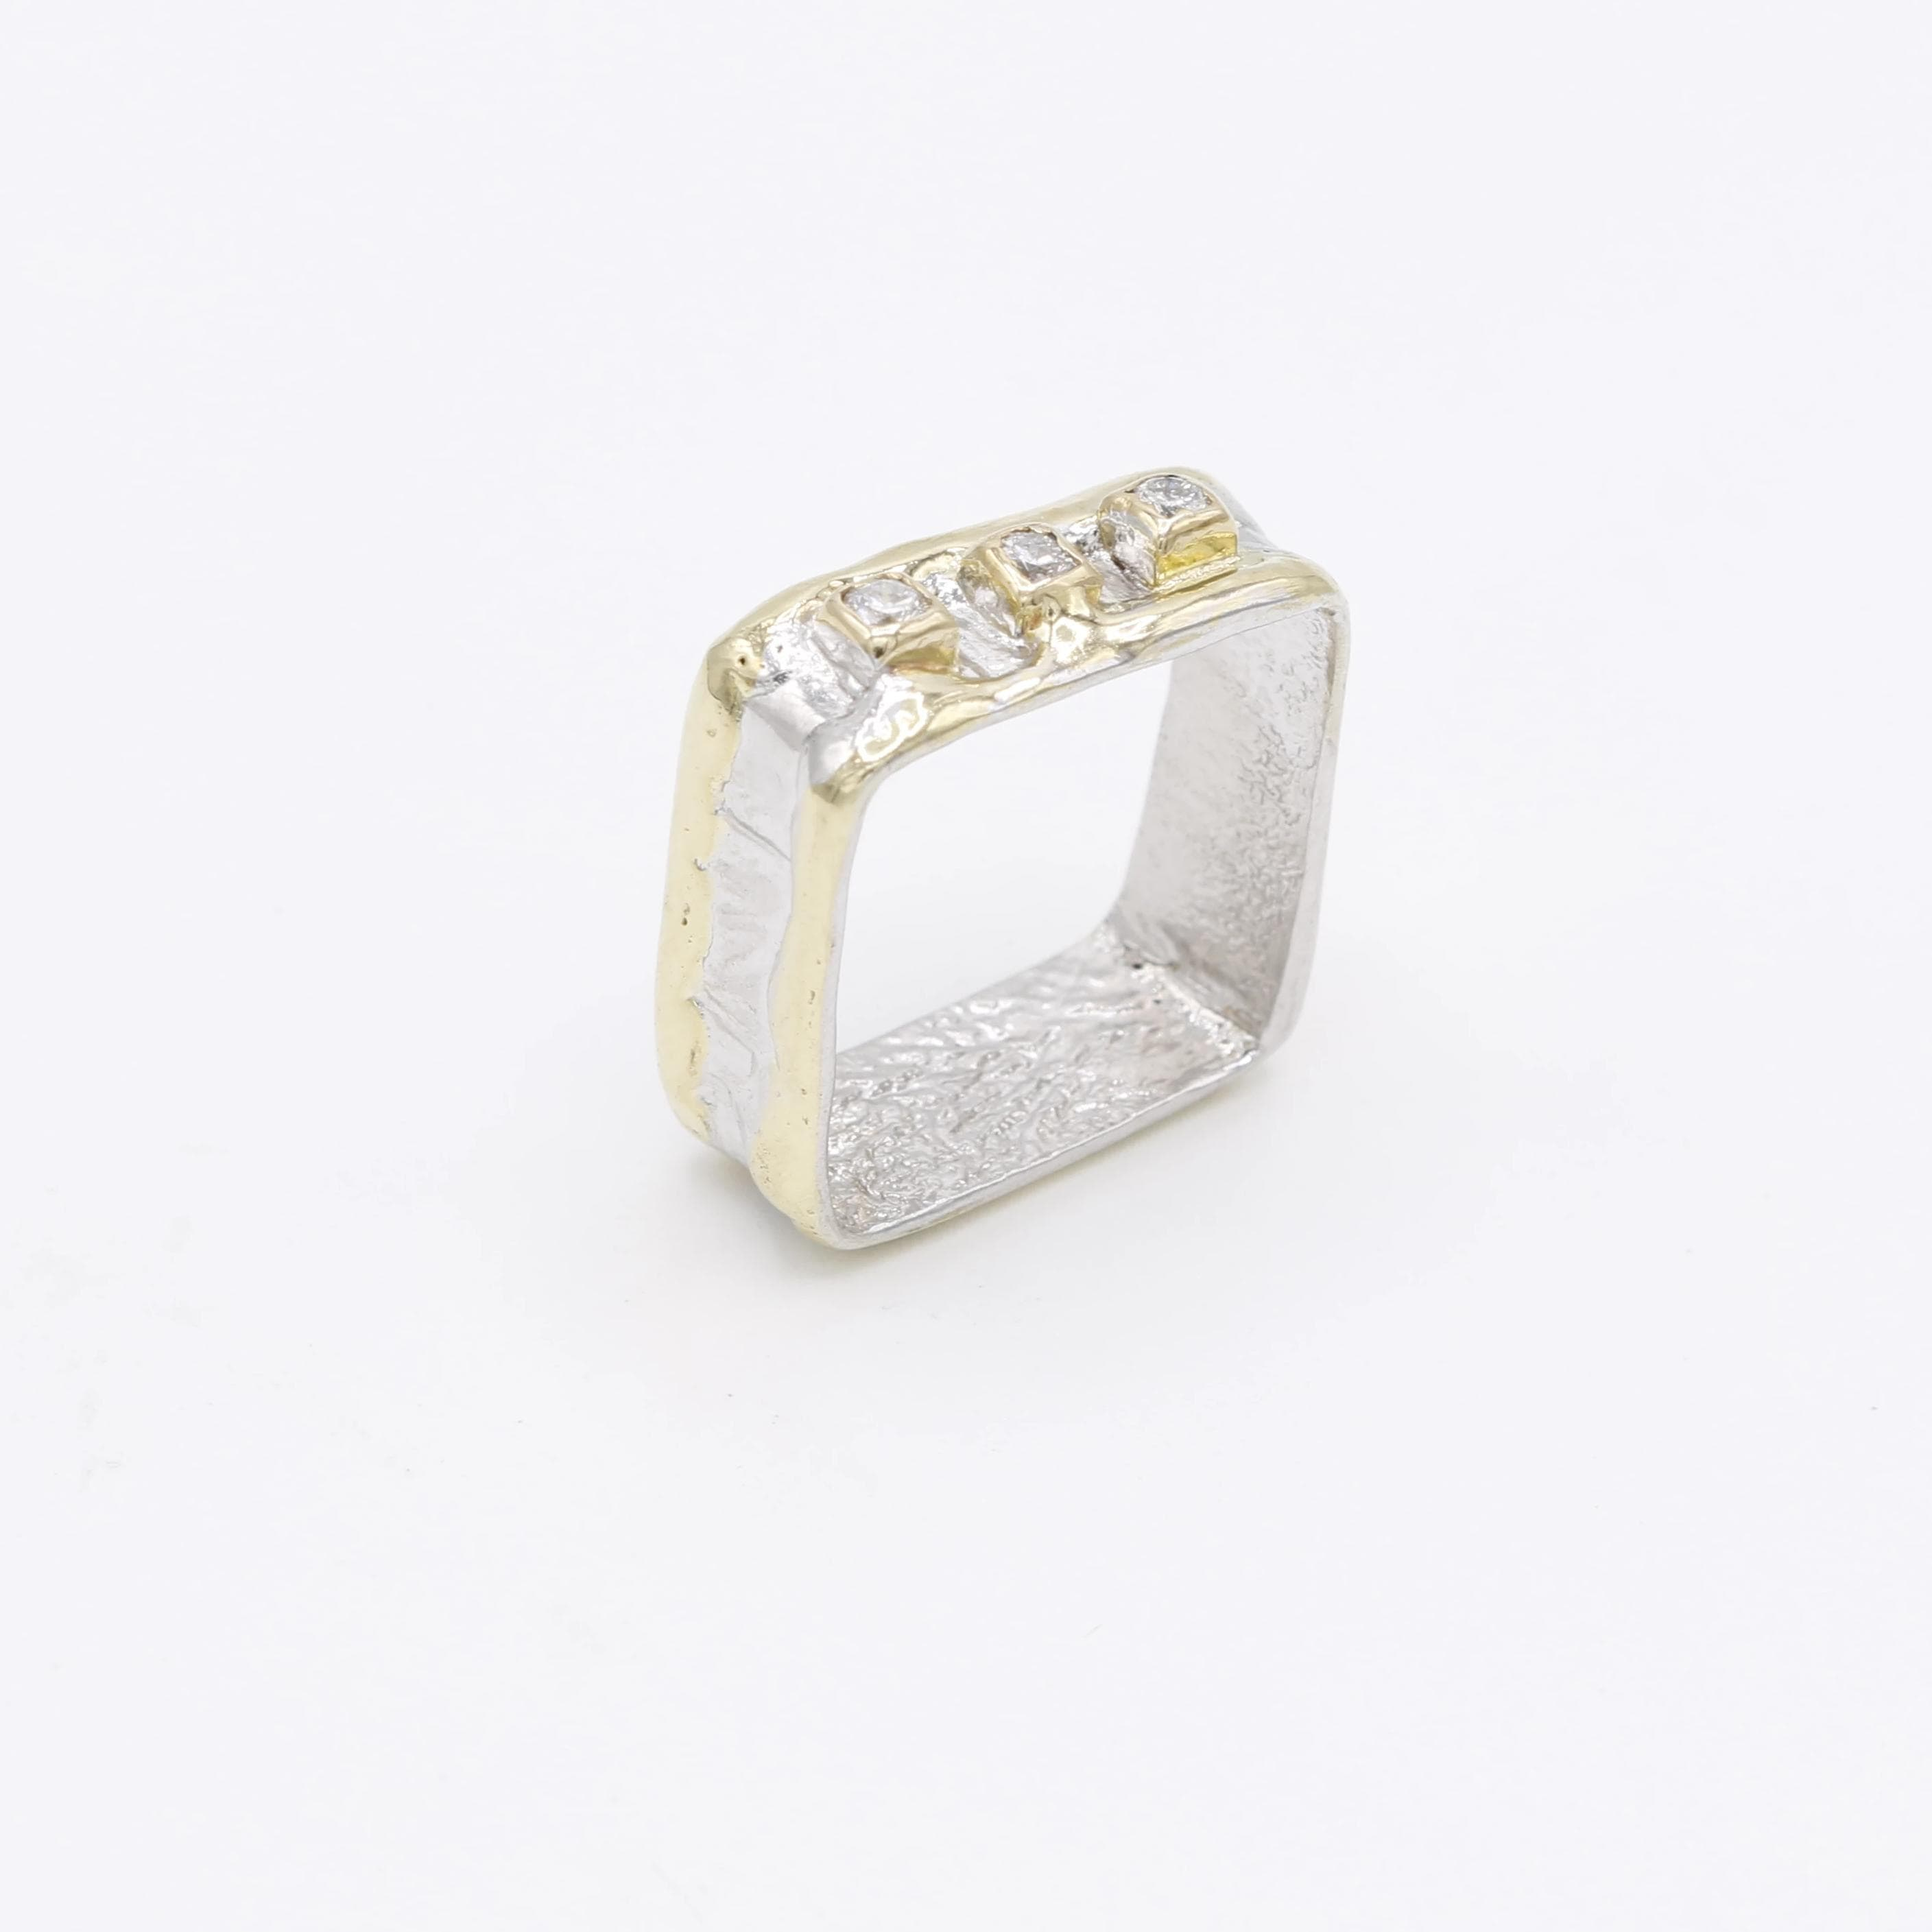 14K Gold & Crystalline Silver Diamond Ring - 30585-Fusion Designs-Renee Taylor Gallery